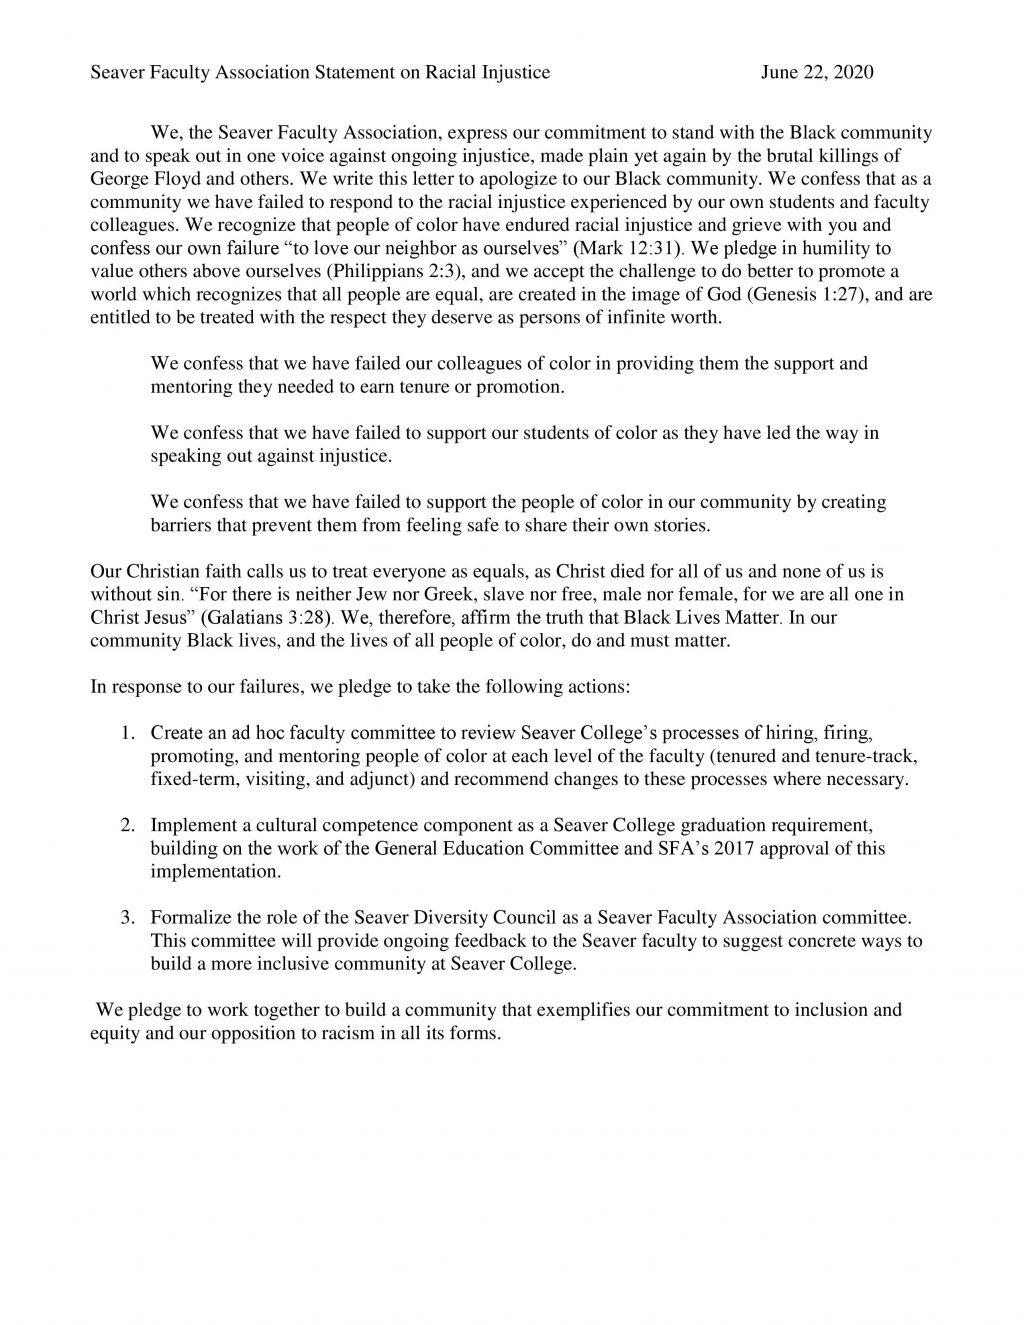 The Seaver Faculty Association's statement on racial injustice and the action the SFA plans to take against racism on campus.